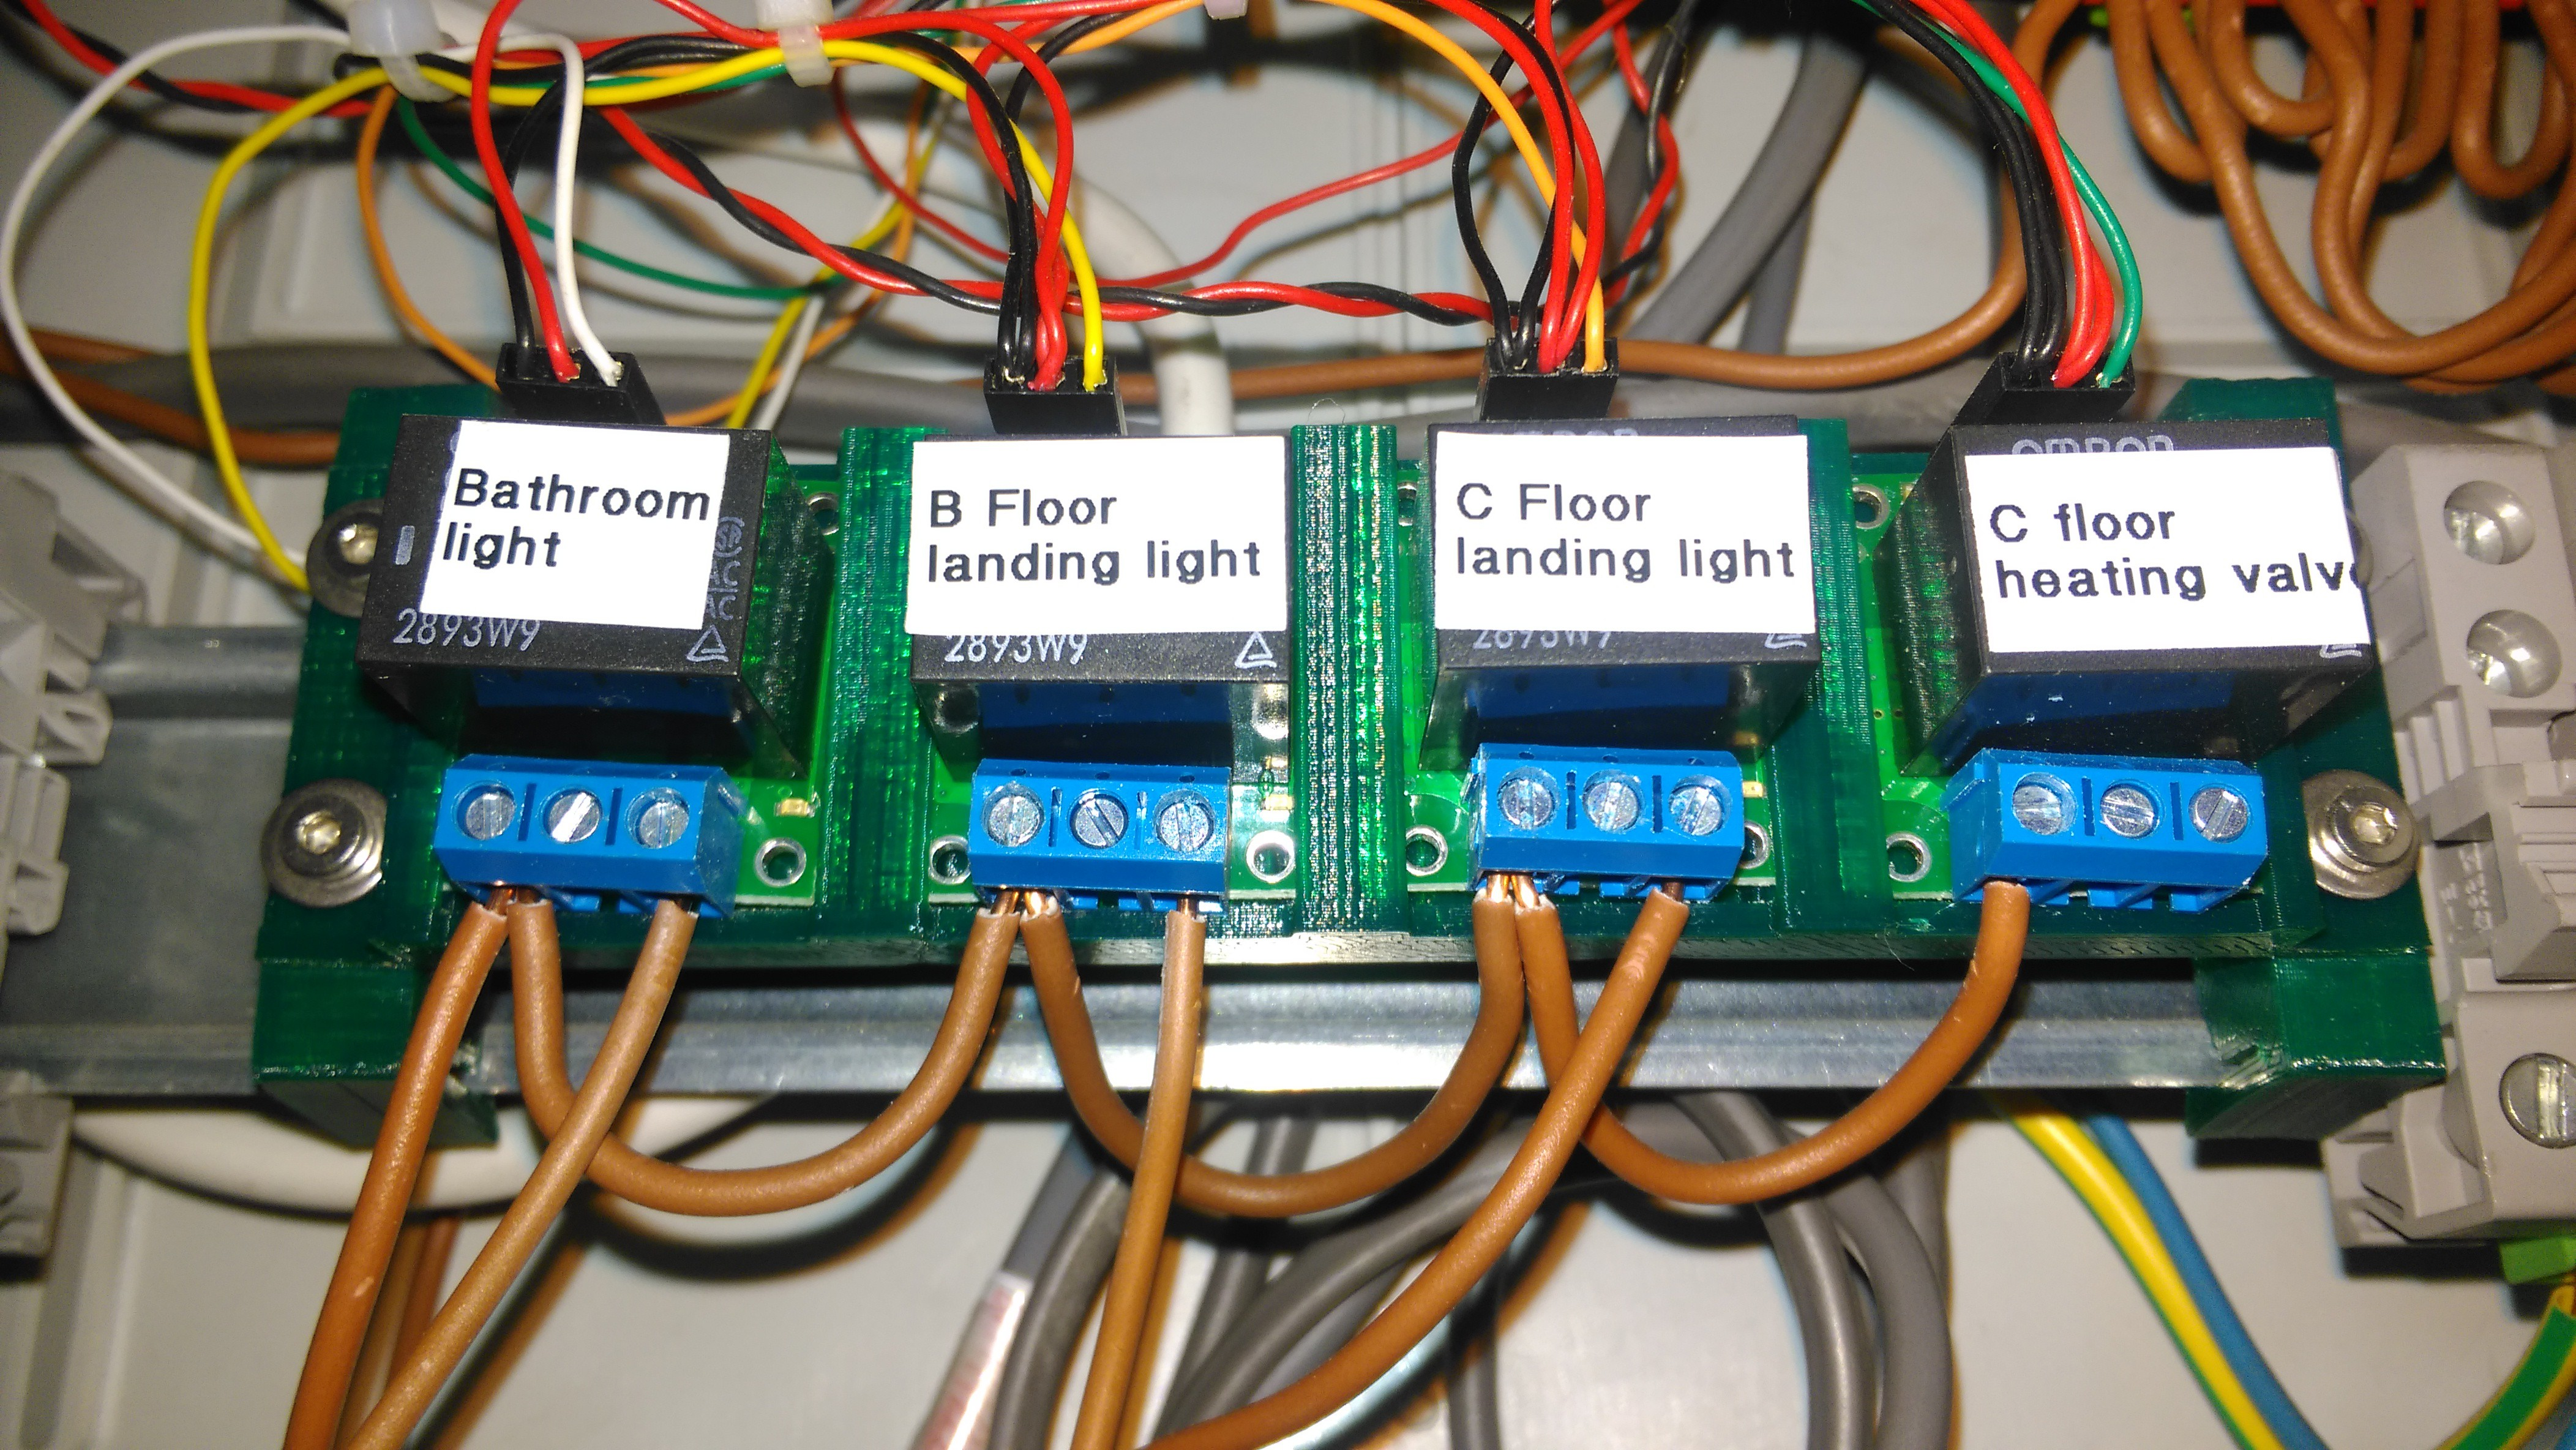 Project Commercial Home Automation Wiring Diagram For A Pir Light Switch How To Wire And Thats The Four Module Holder With Relays Installed Din Rail Clip Mounted At Either End